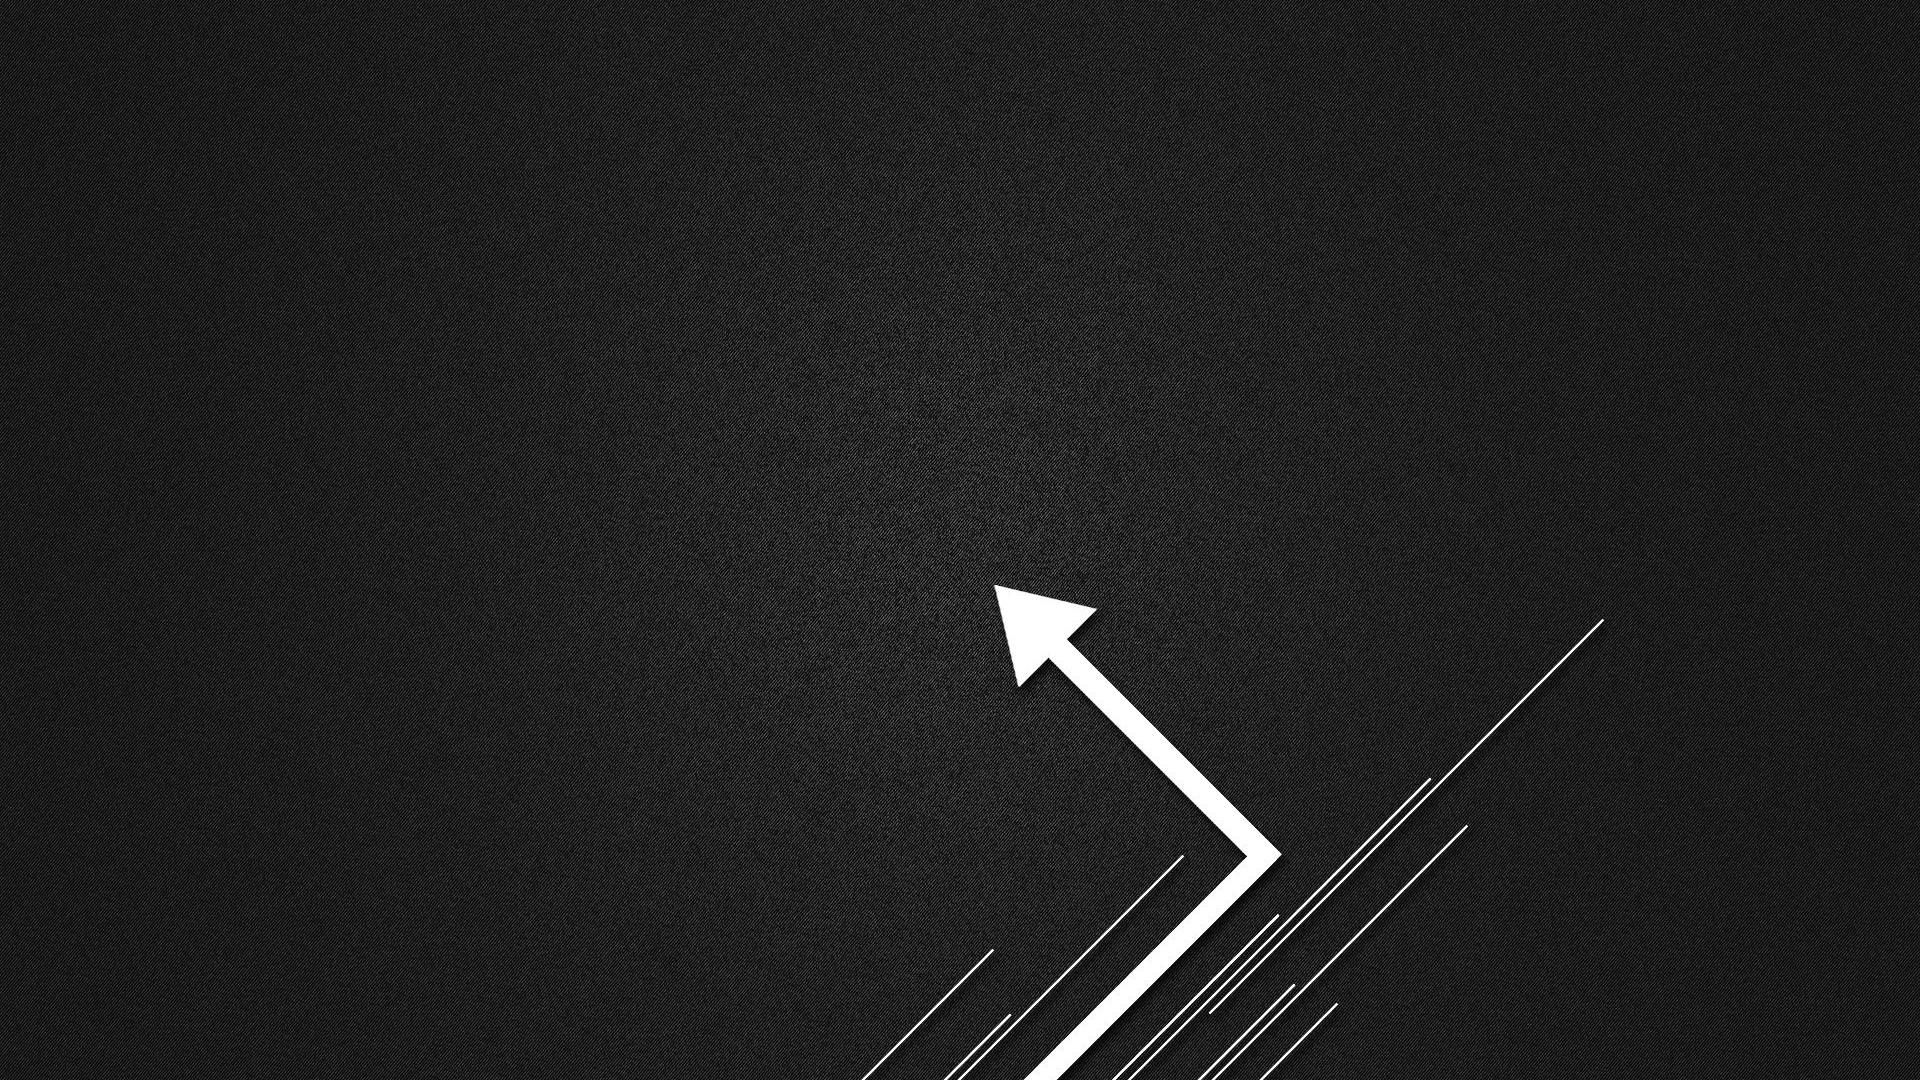 1c4233e20039da1f1b83d77621ffee49 Large Jpeg 1920 1080 Minimalist Wallpaper Black Abstract Background Black Desktop Background